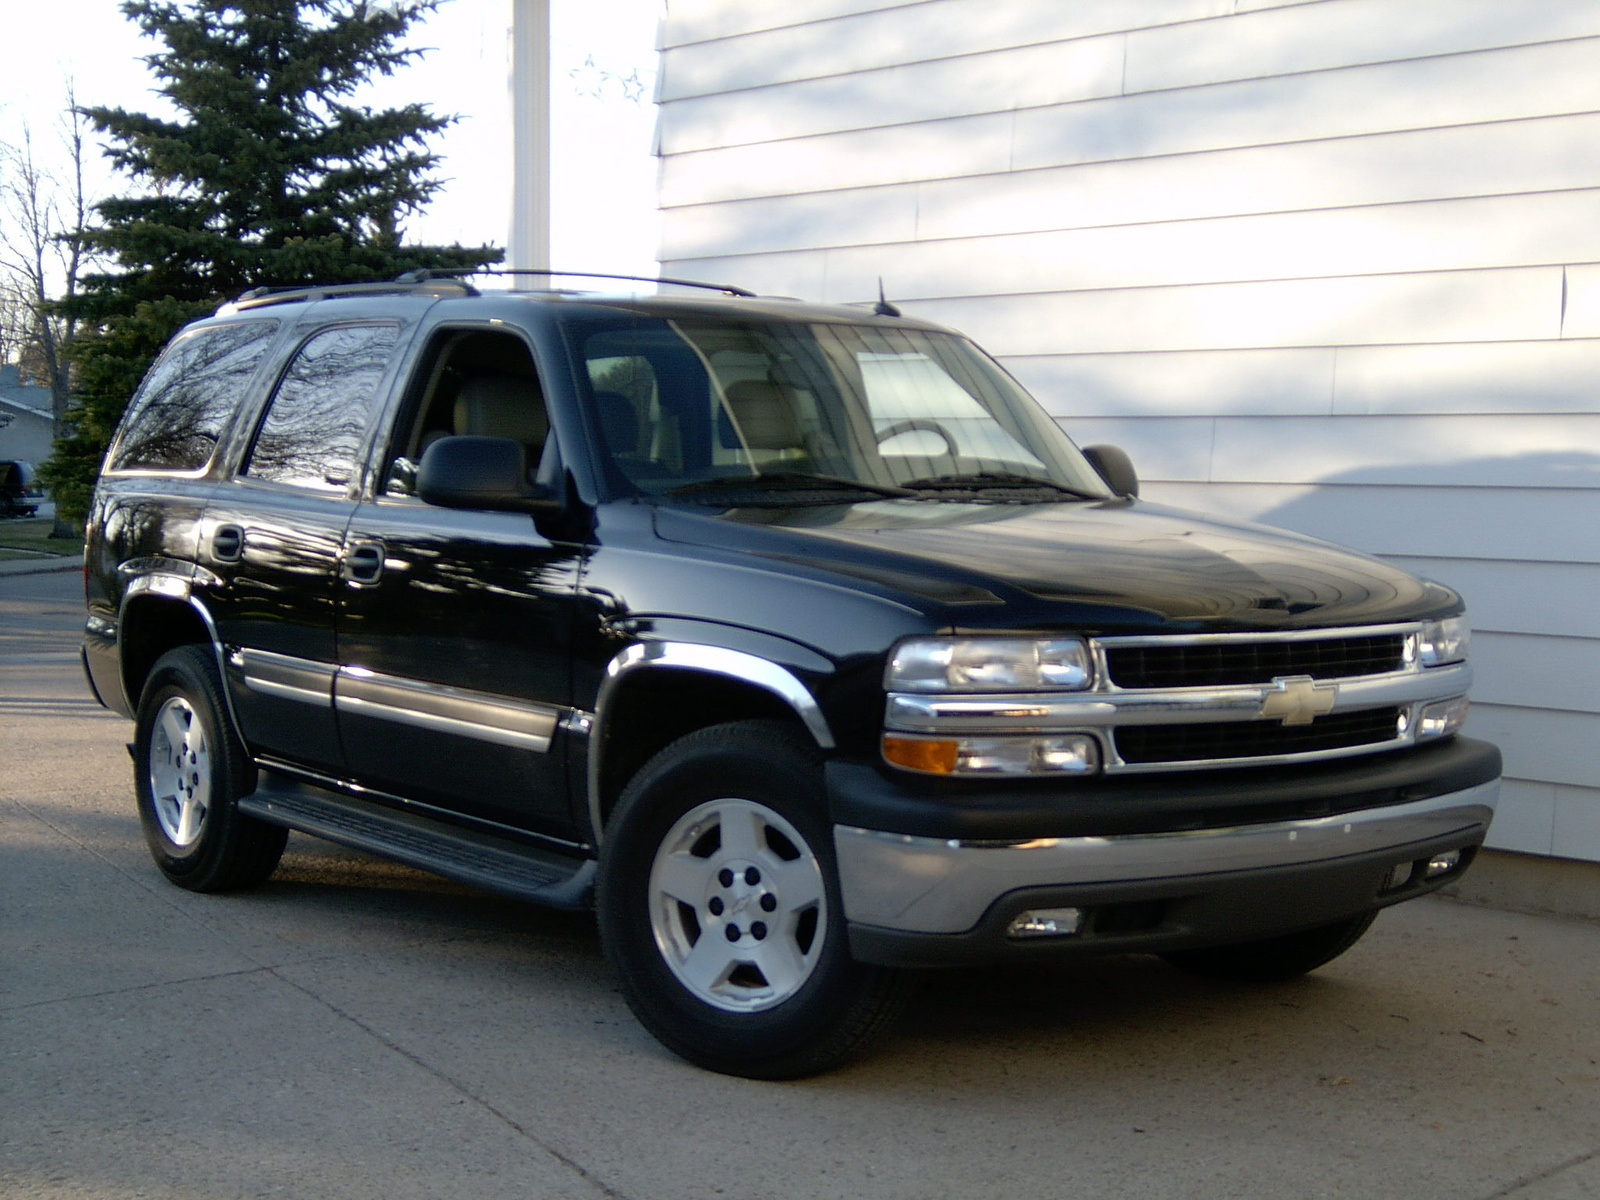 2004 chevrolet tahoe pictures cargurus. Black Bedroom Furniture Sets. Home Design Ideas